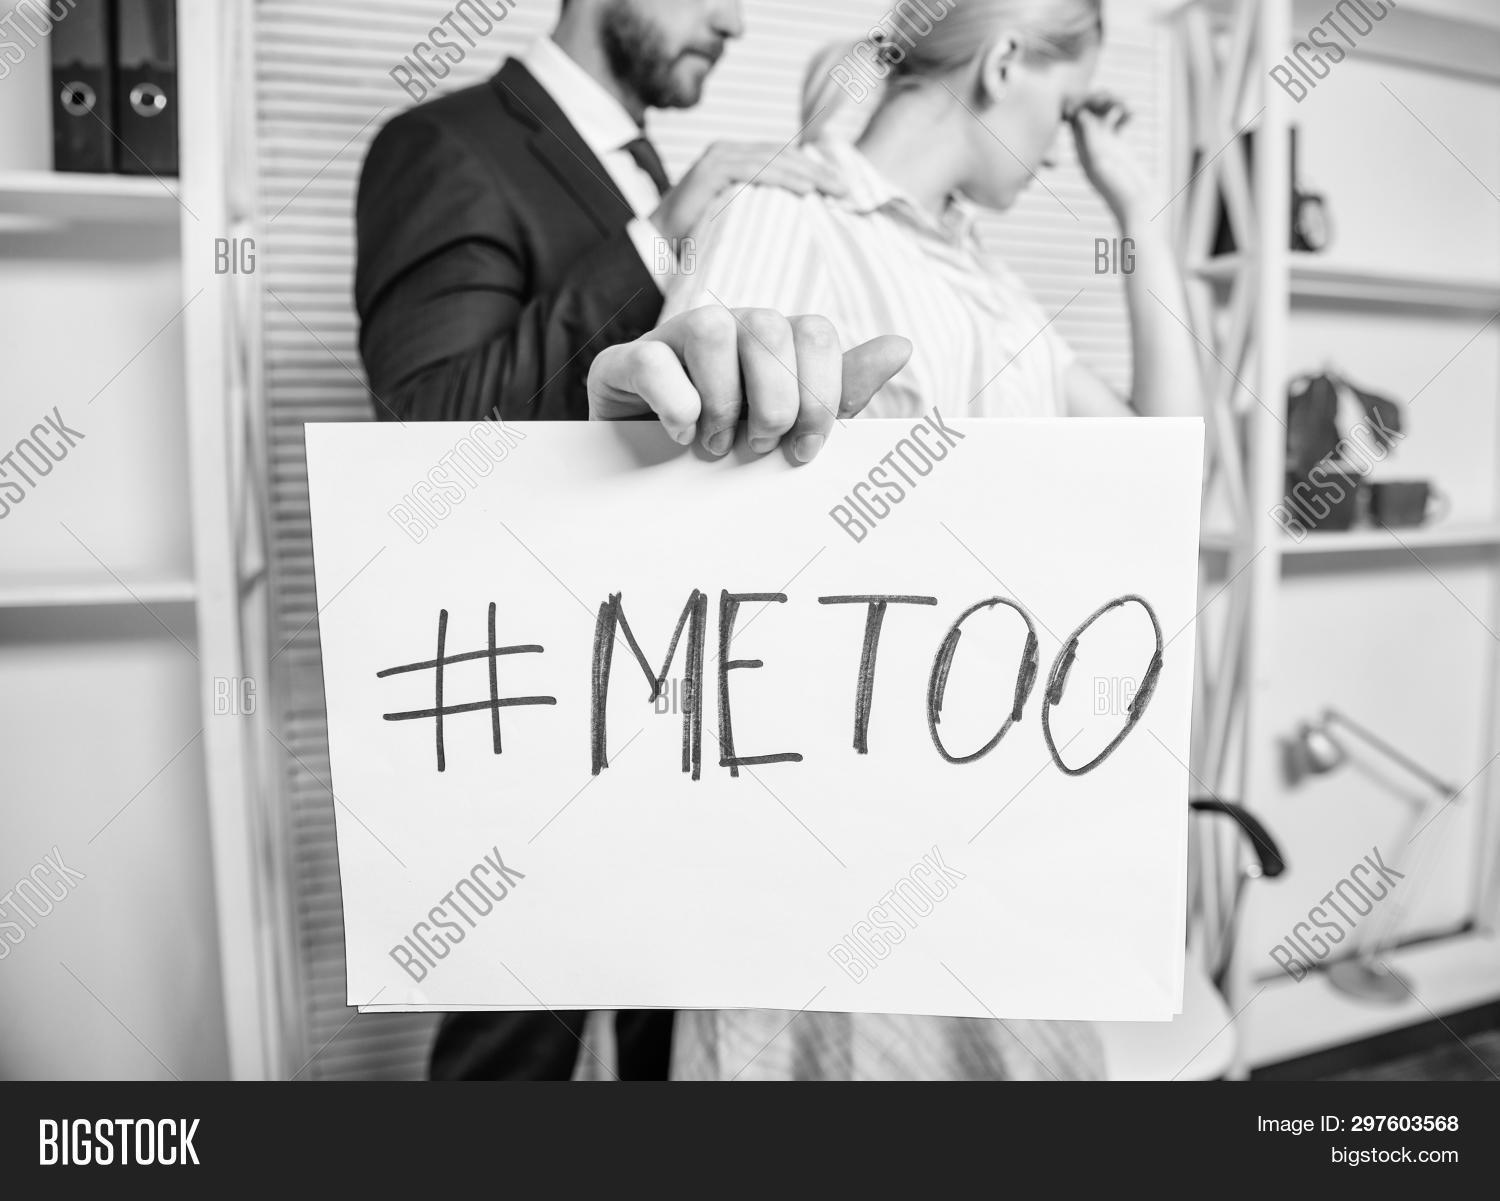 Discrimination assault complaint. Scandal sexual abuse victim. Assault at workplace. Assault targeted at employee. Girl hold poster hashtag me too while colleague calm down her. Share assault story